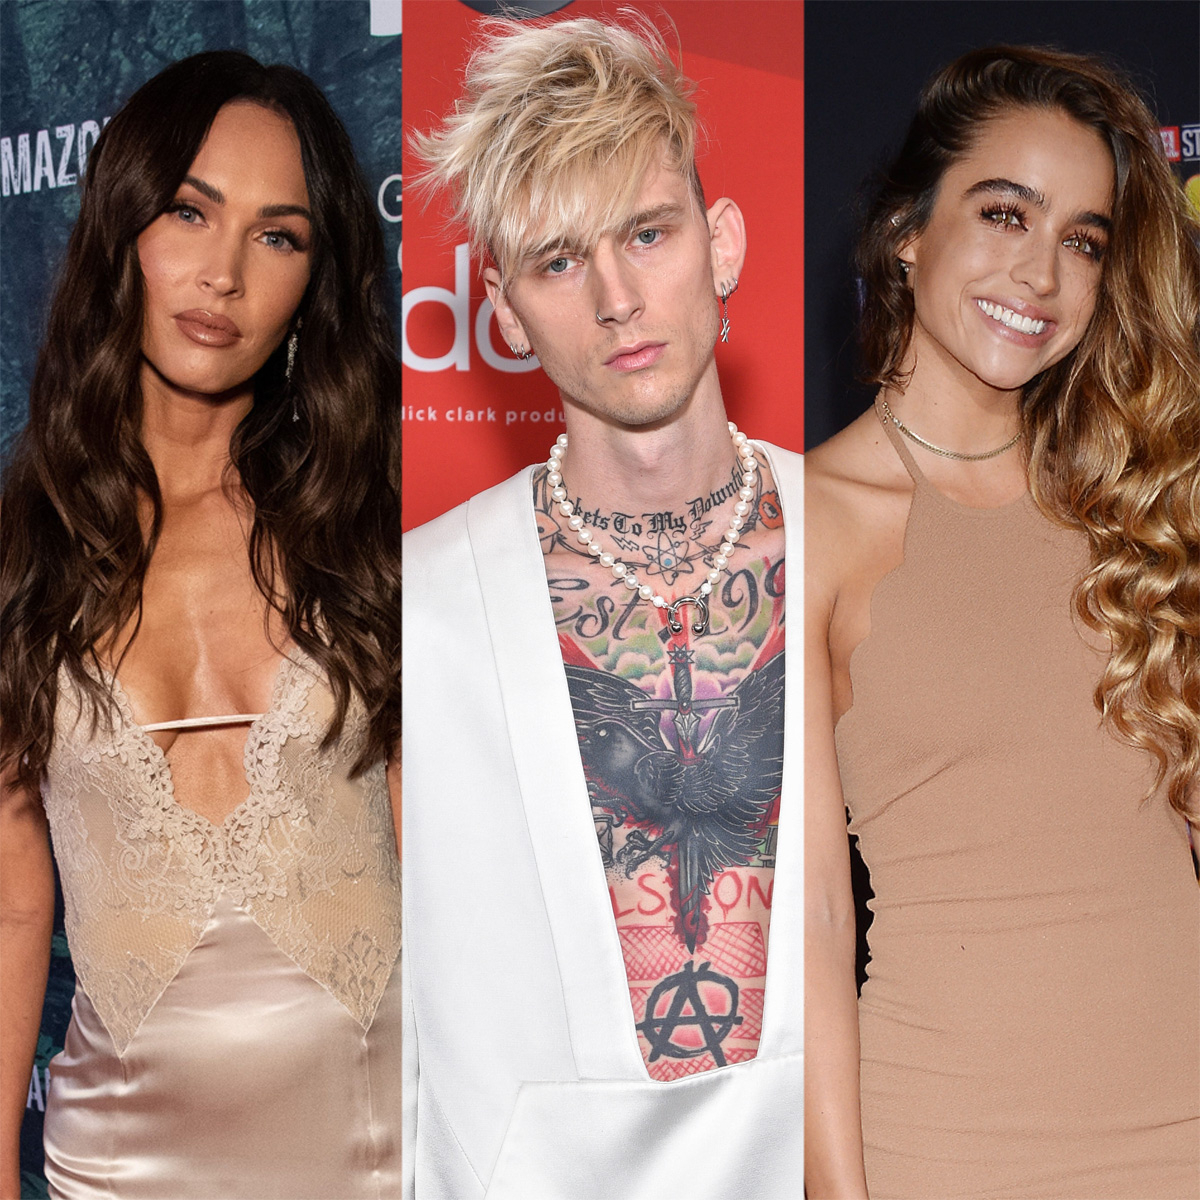 Sommer Ray Accuses Machine Gun Kelly of Cheating on Her With Megan Fox